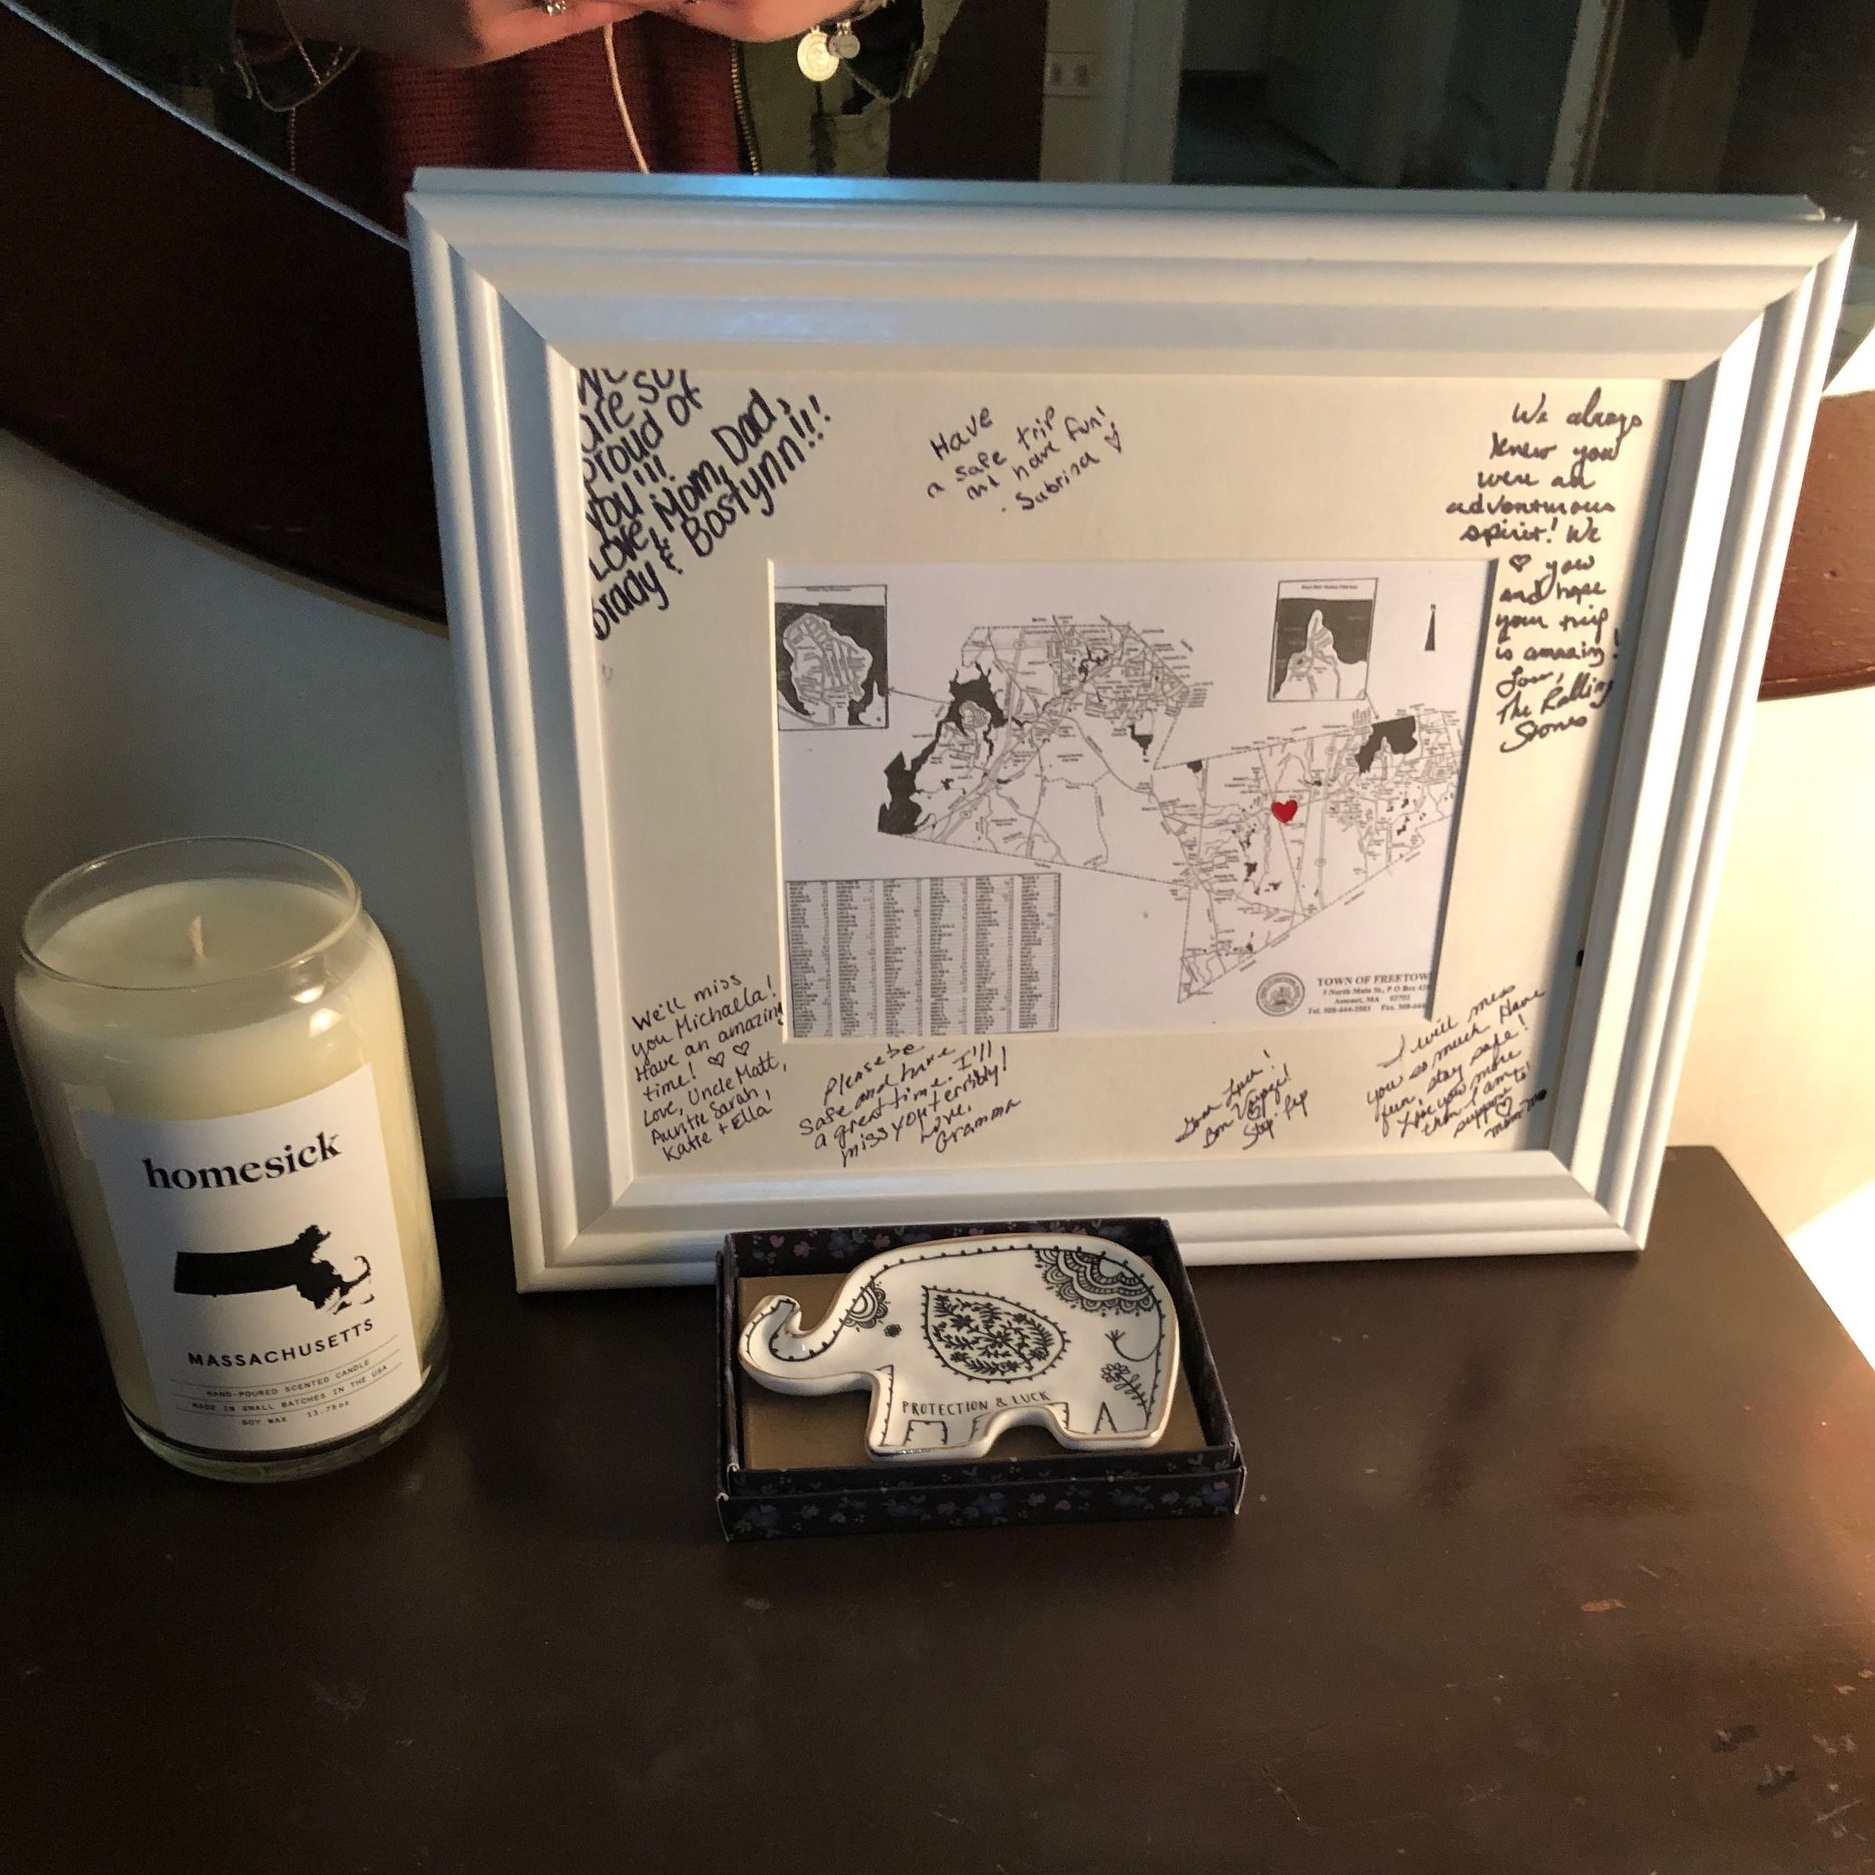 My family was really sad for me to leave, but was also excited. They sent with me a frame of my town and a Homesick candle! Photo credit: Arguin, 2019